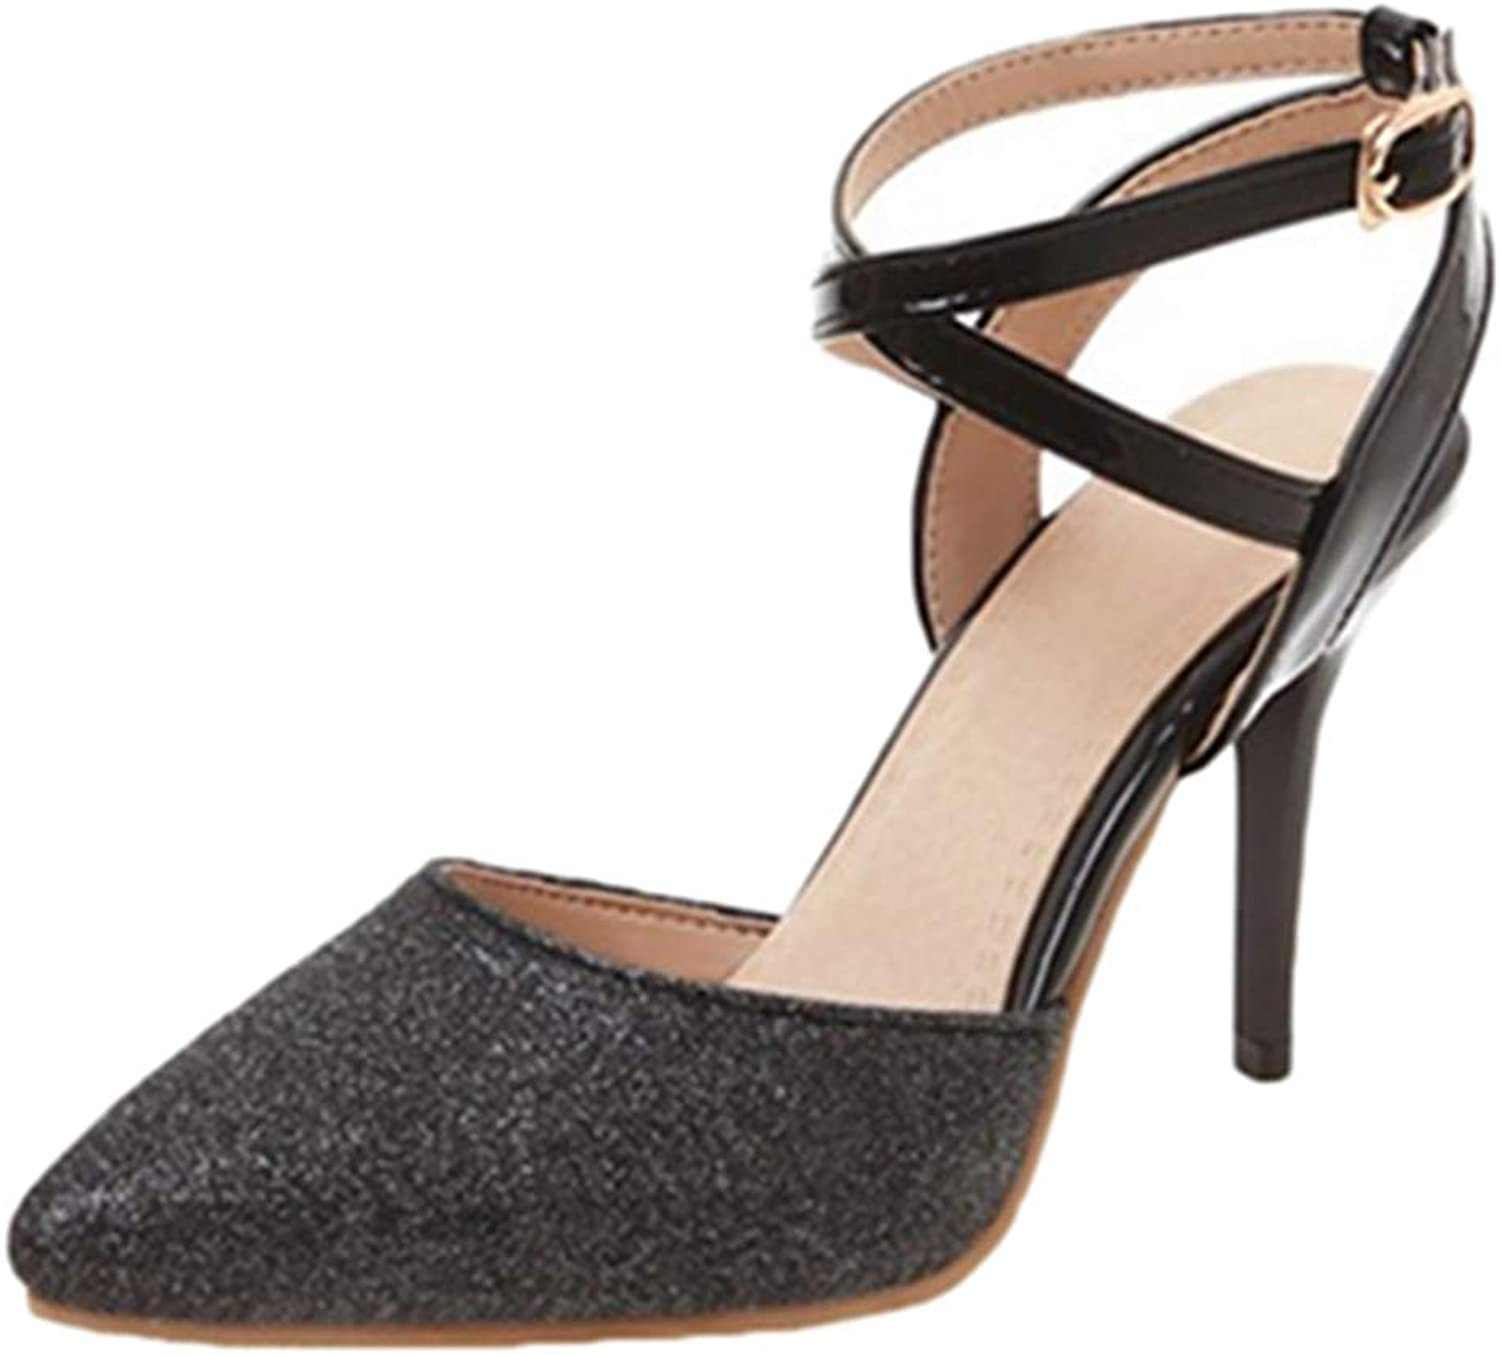 CUTEHEELS Women Dressy Heels with Stiletto and Pointed Toe